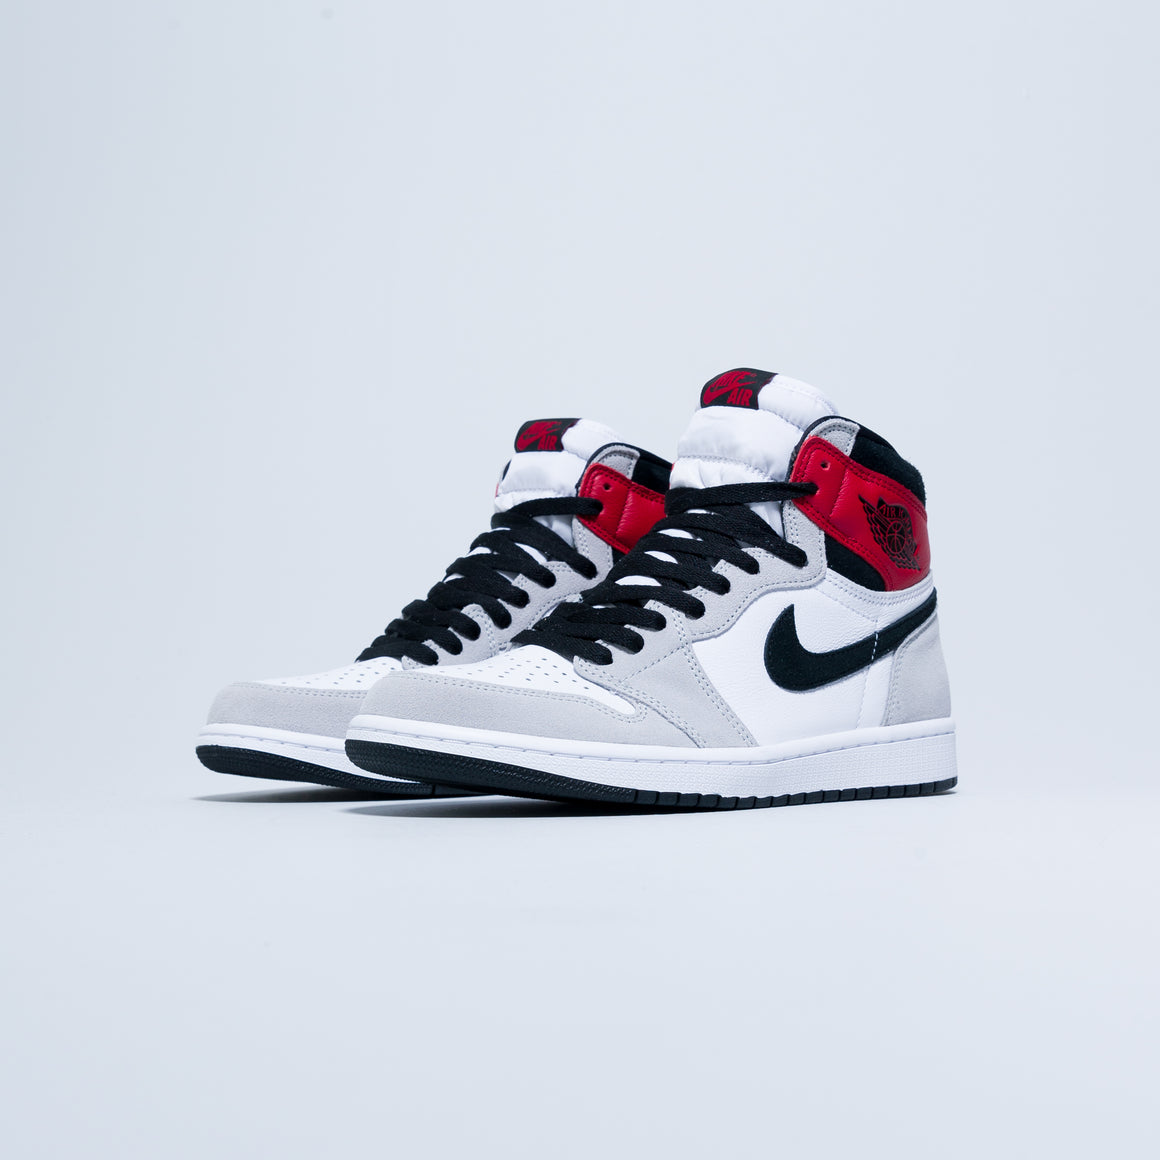 Air Jordan 1 Retro Hi OG - White/Black-Light Smoke Grey-Varsity Red - Up There